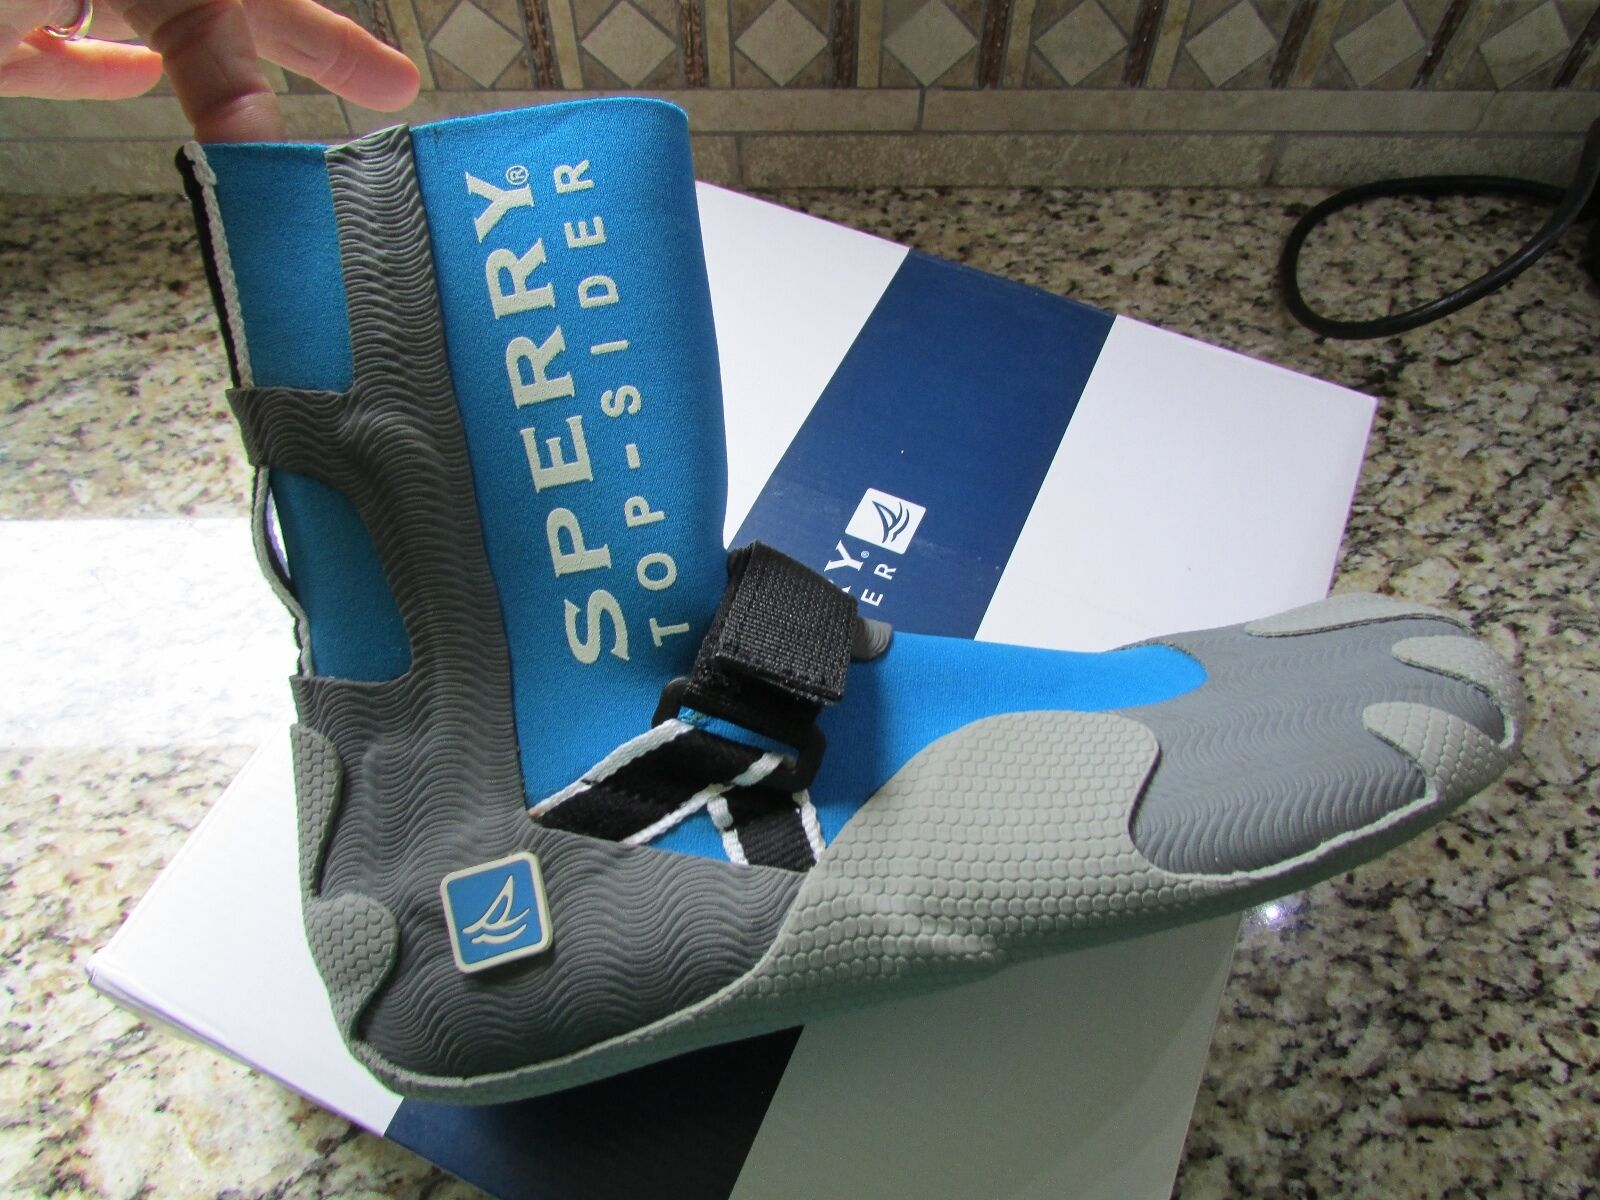 NEW SPERRY TOP-SIDER SEA SOCK HI BLUE WATER SHOES Uomo 10 #0830802